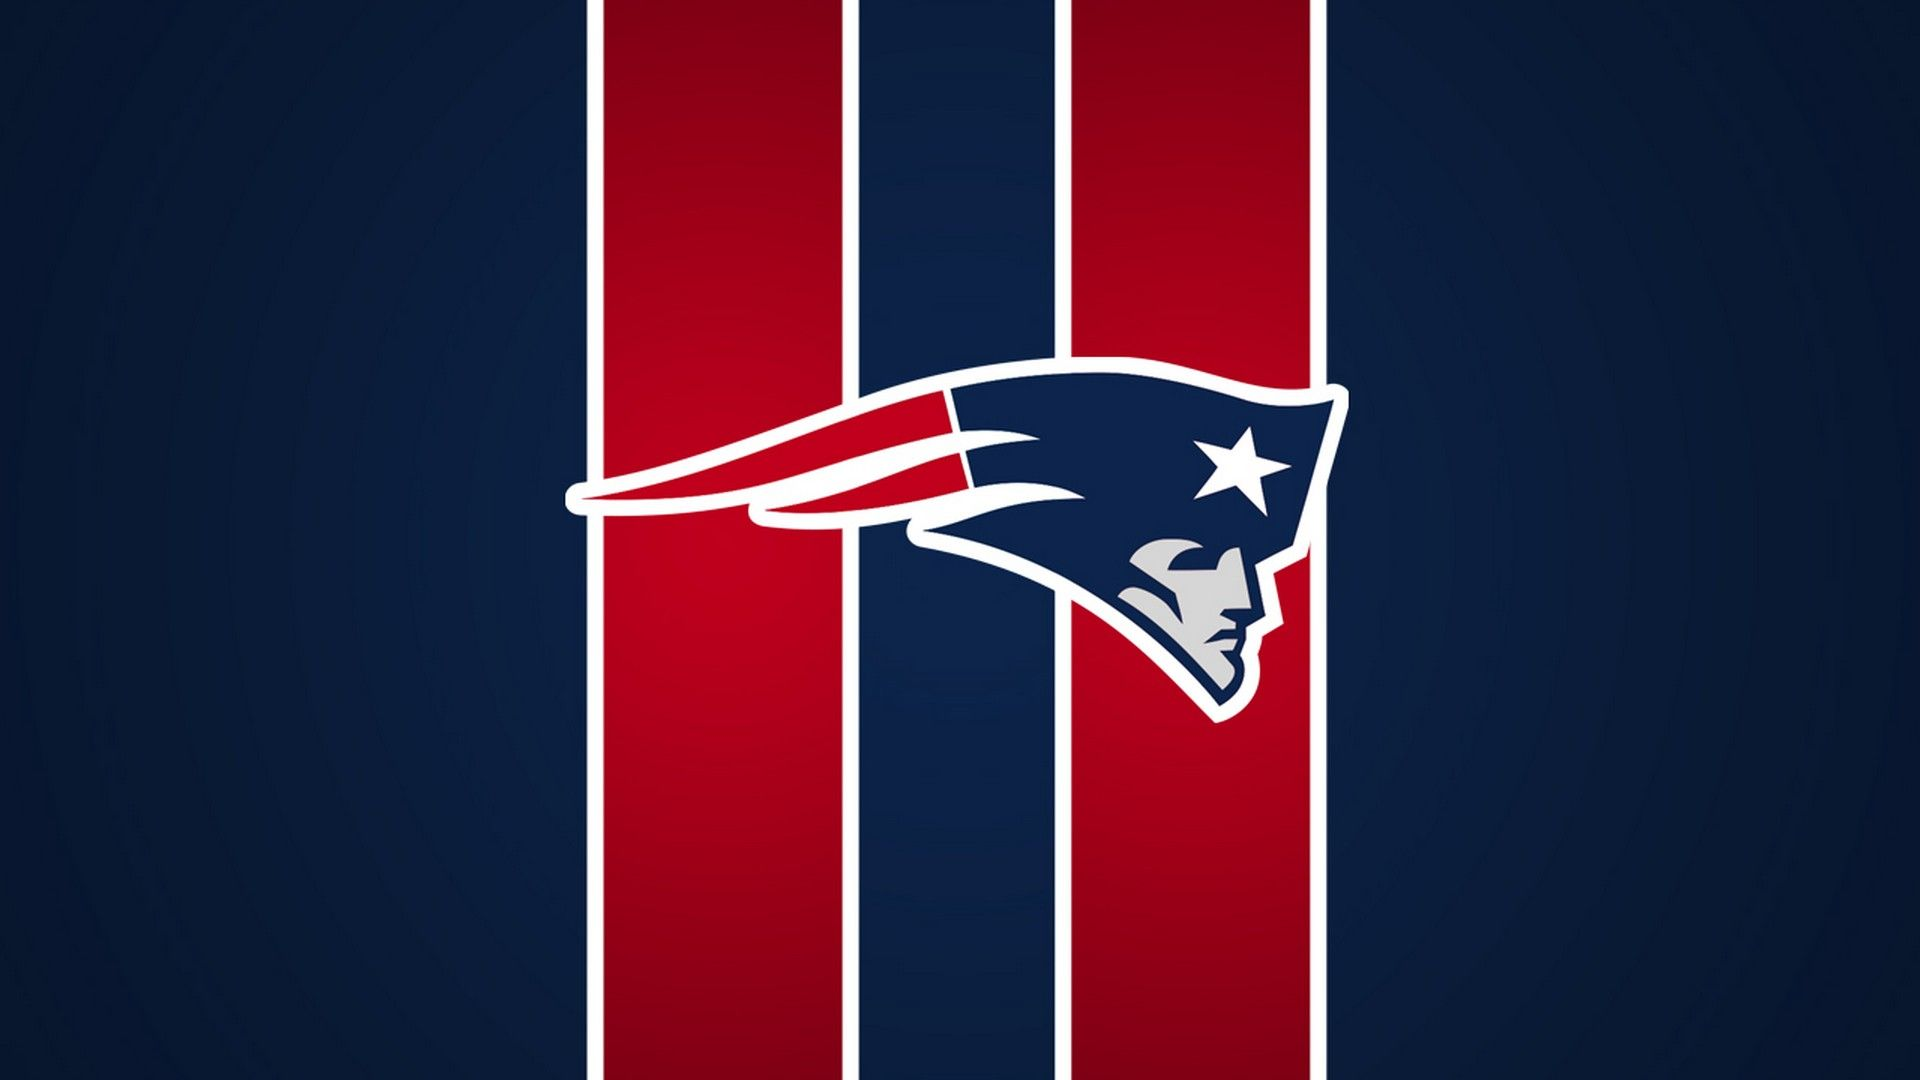 New England Patriots Wallpaper Hd For Android - HD Wallpaper